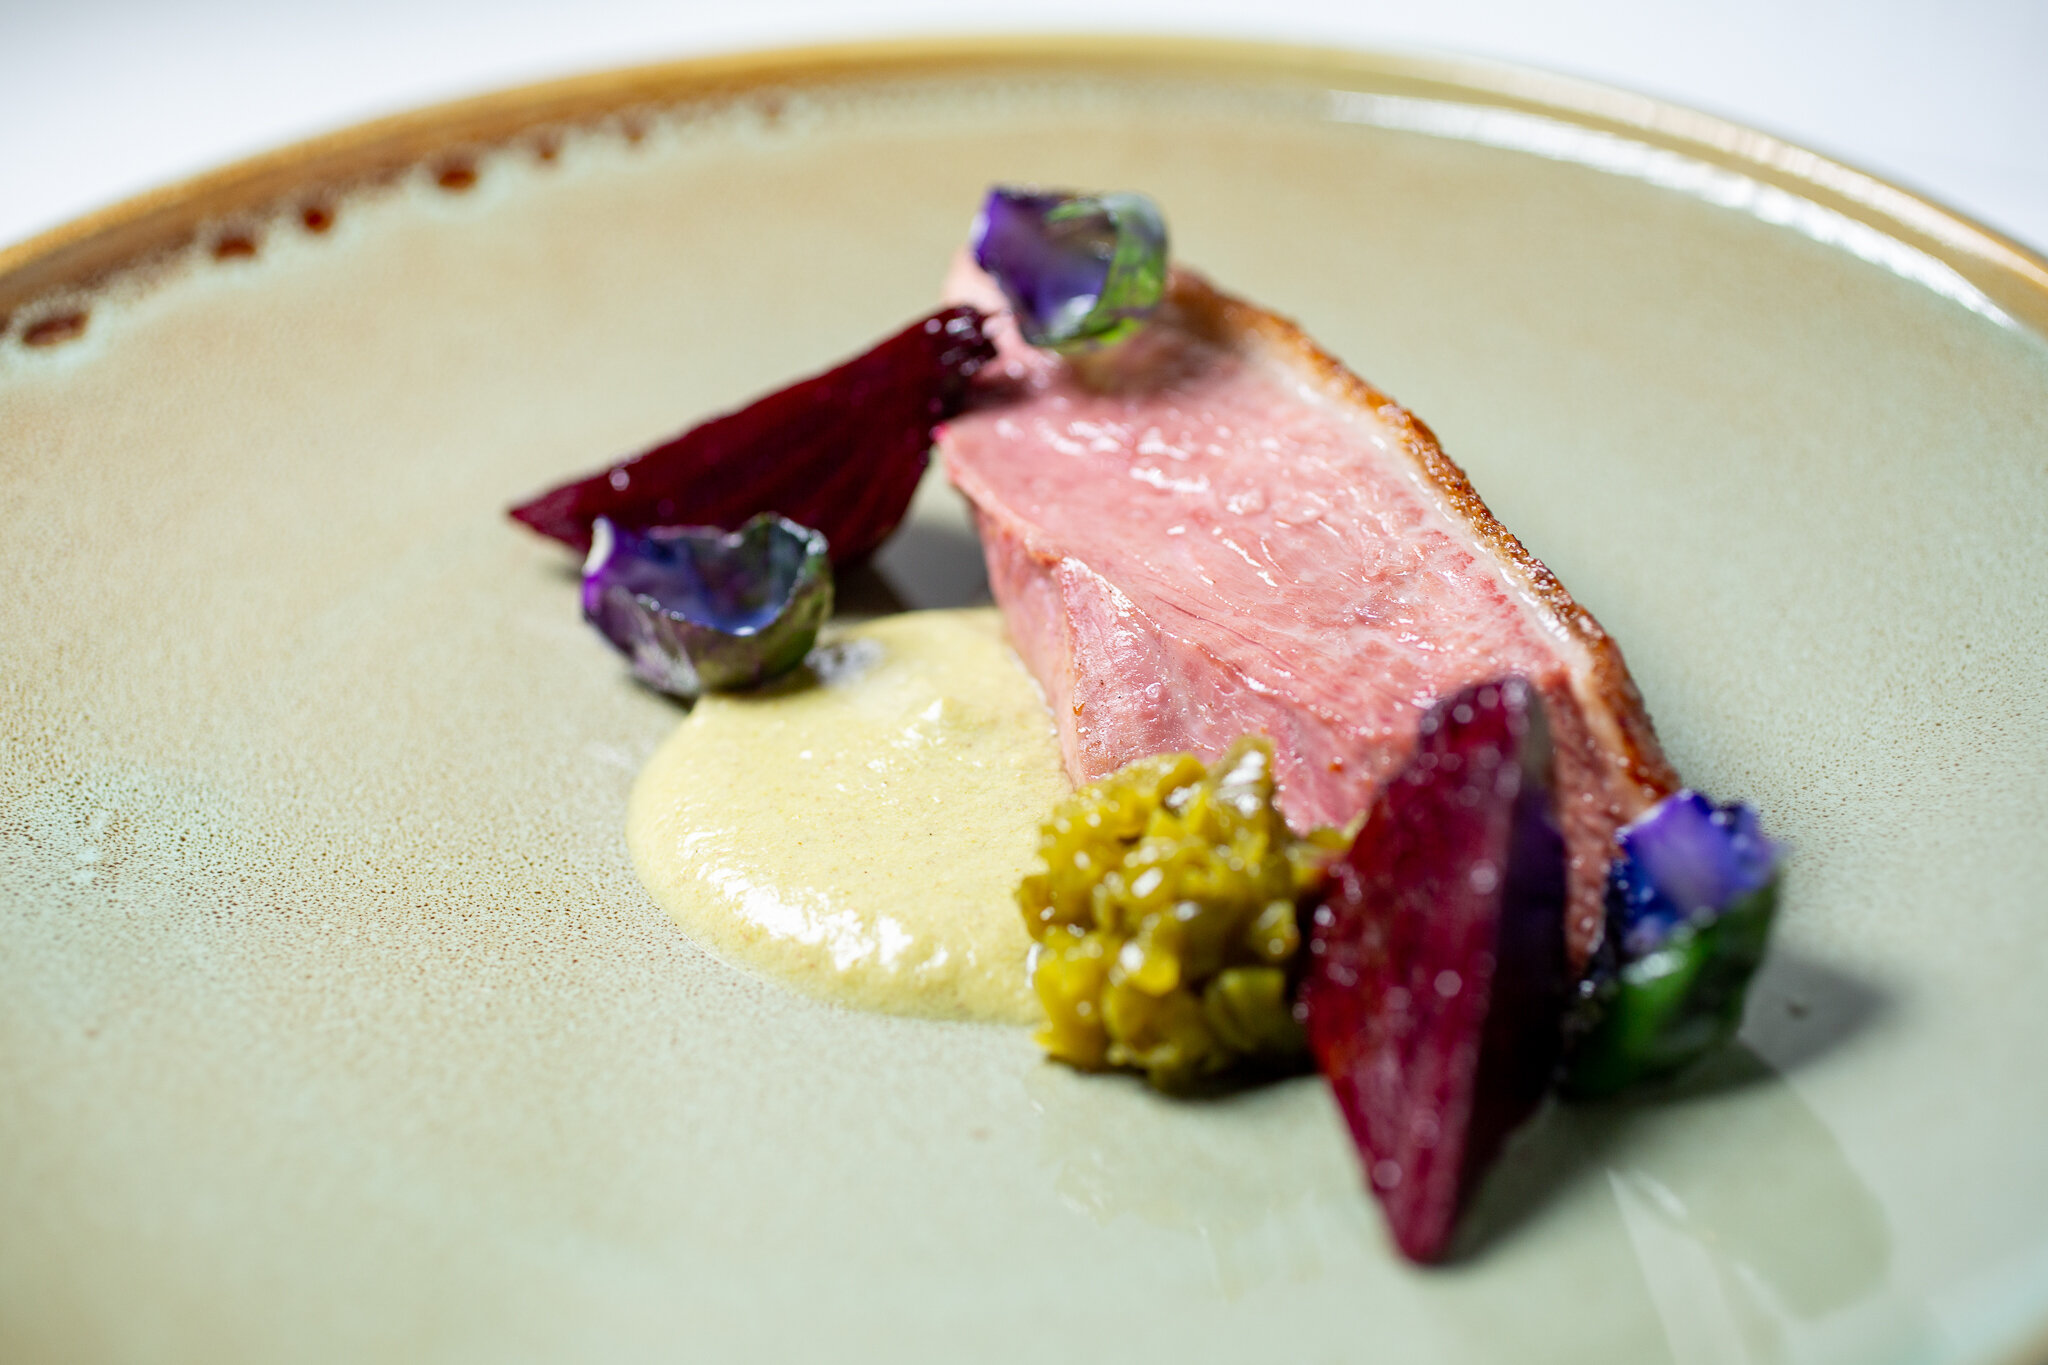 Agave-Glazed Duck, Pistachio Mole, Roasted Beets, Nopales Marmalade